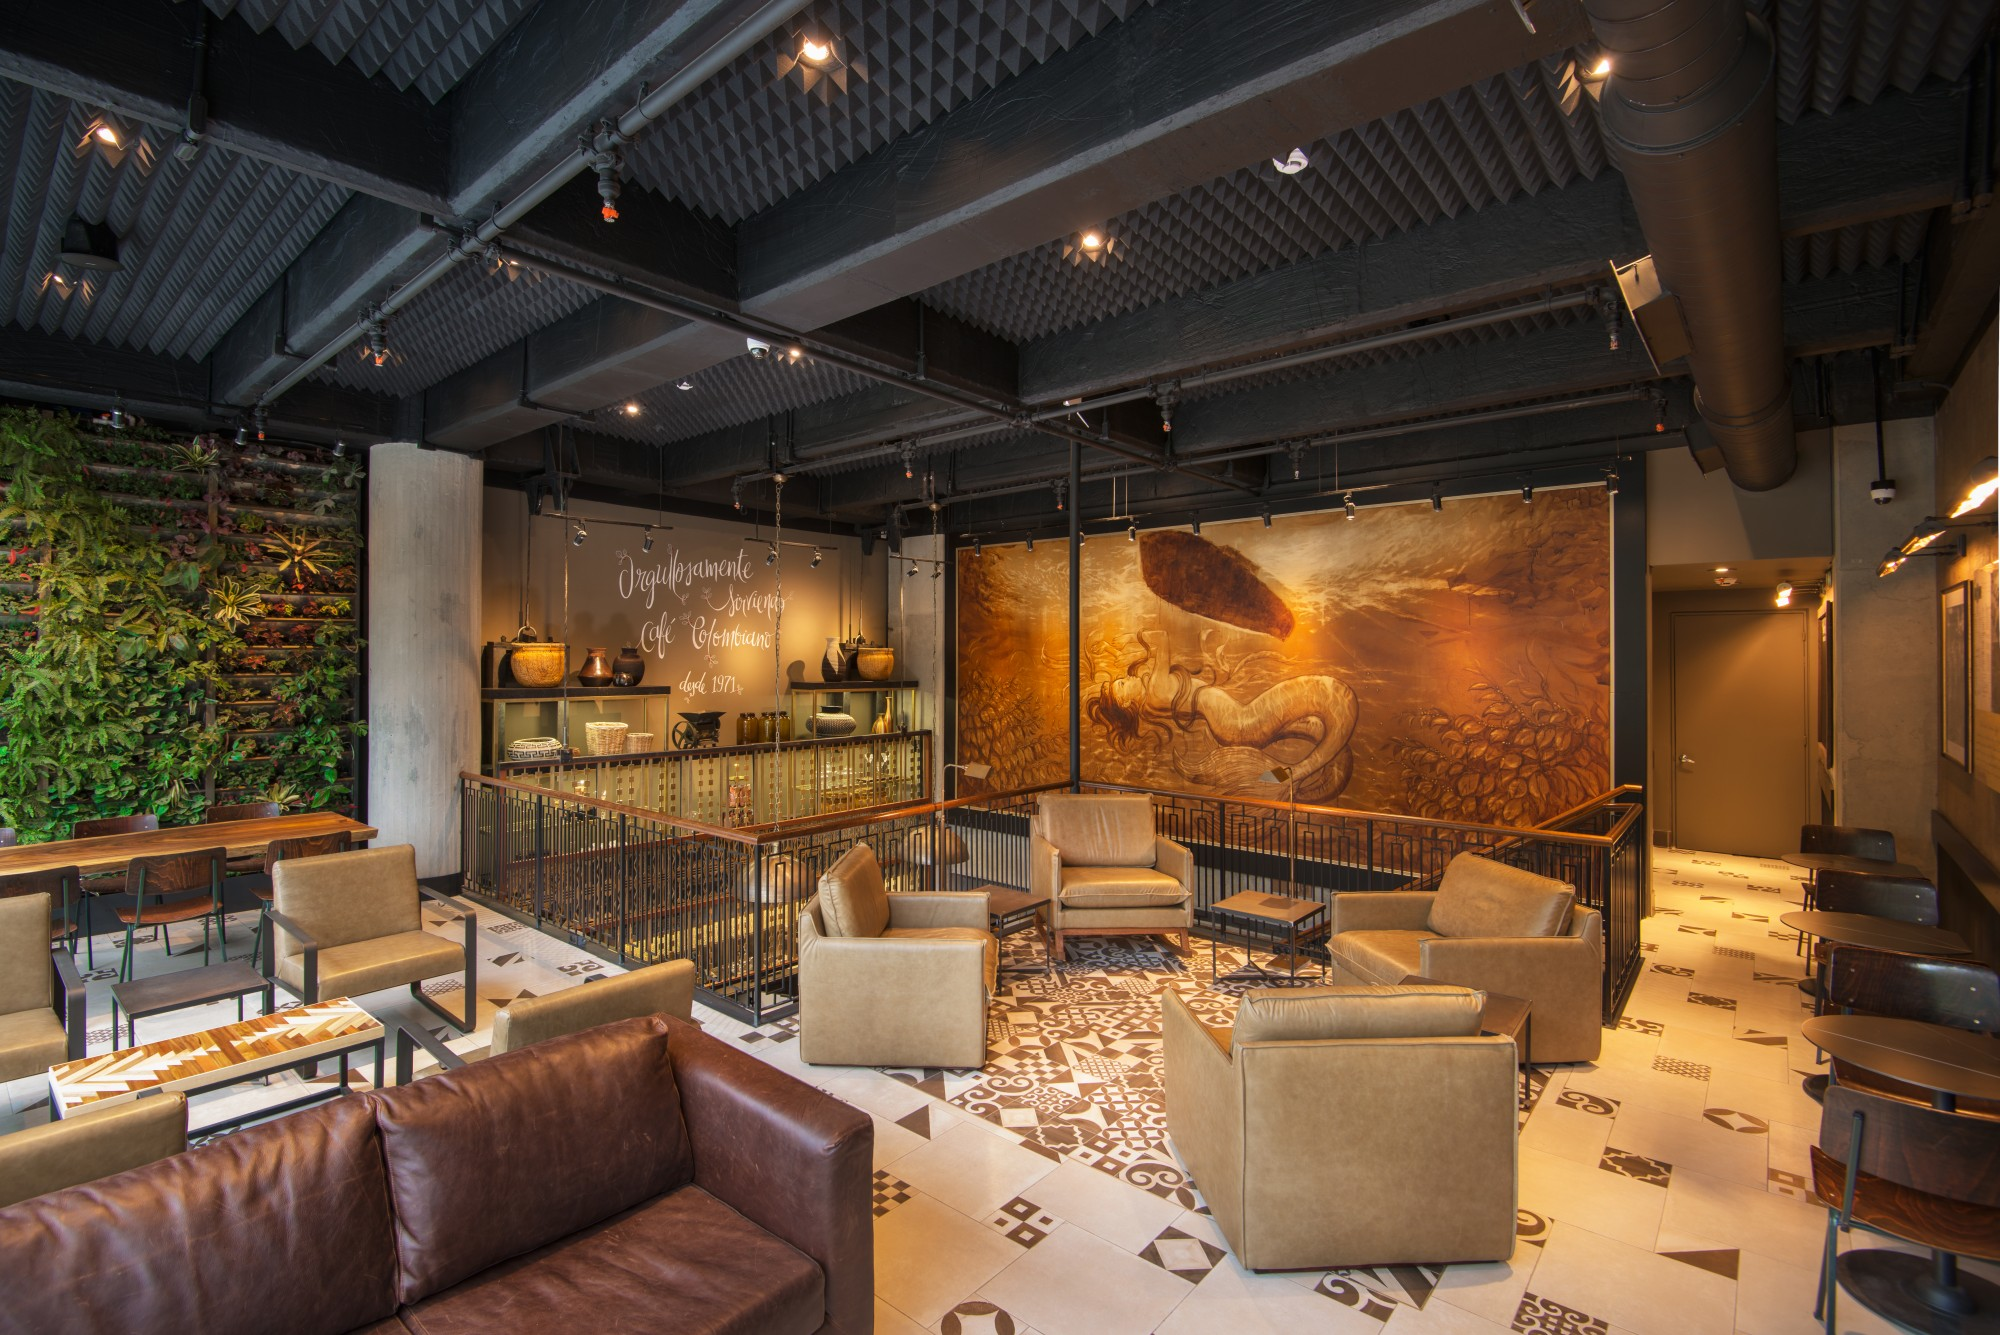 Starbucks opens first store in Colombia, land of coffee